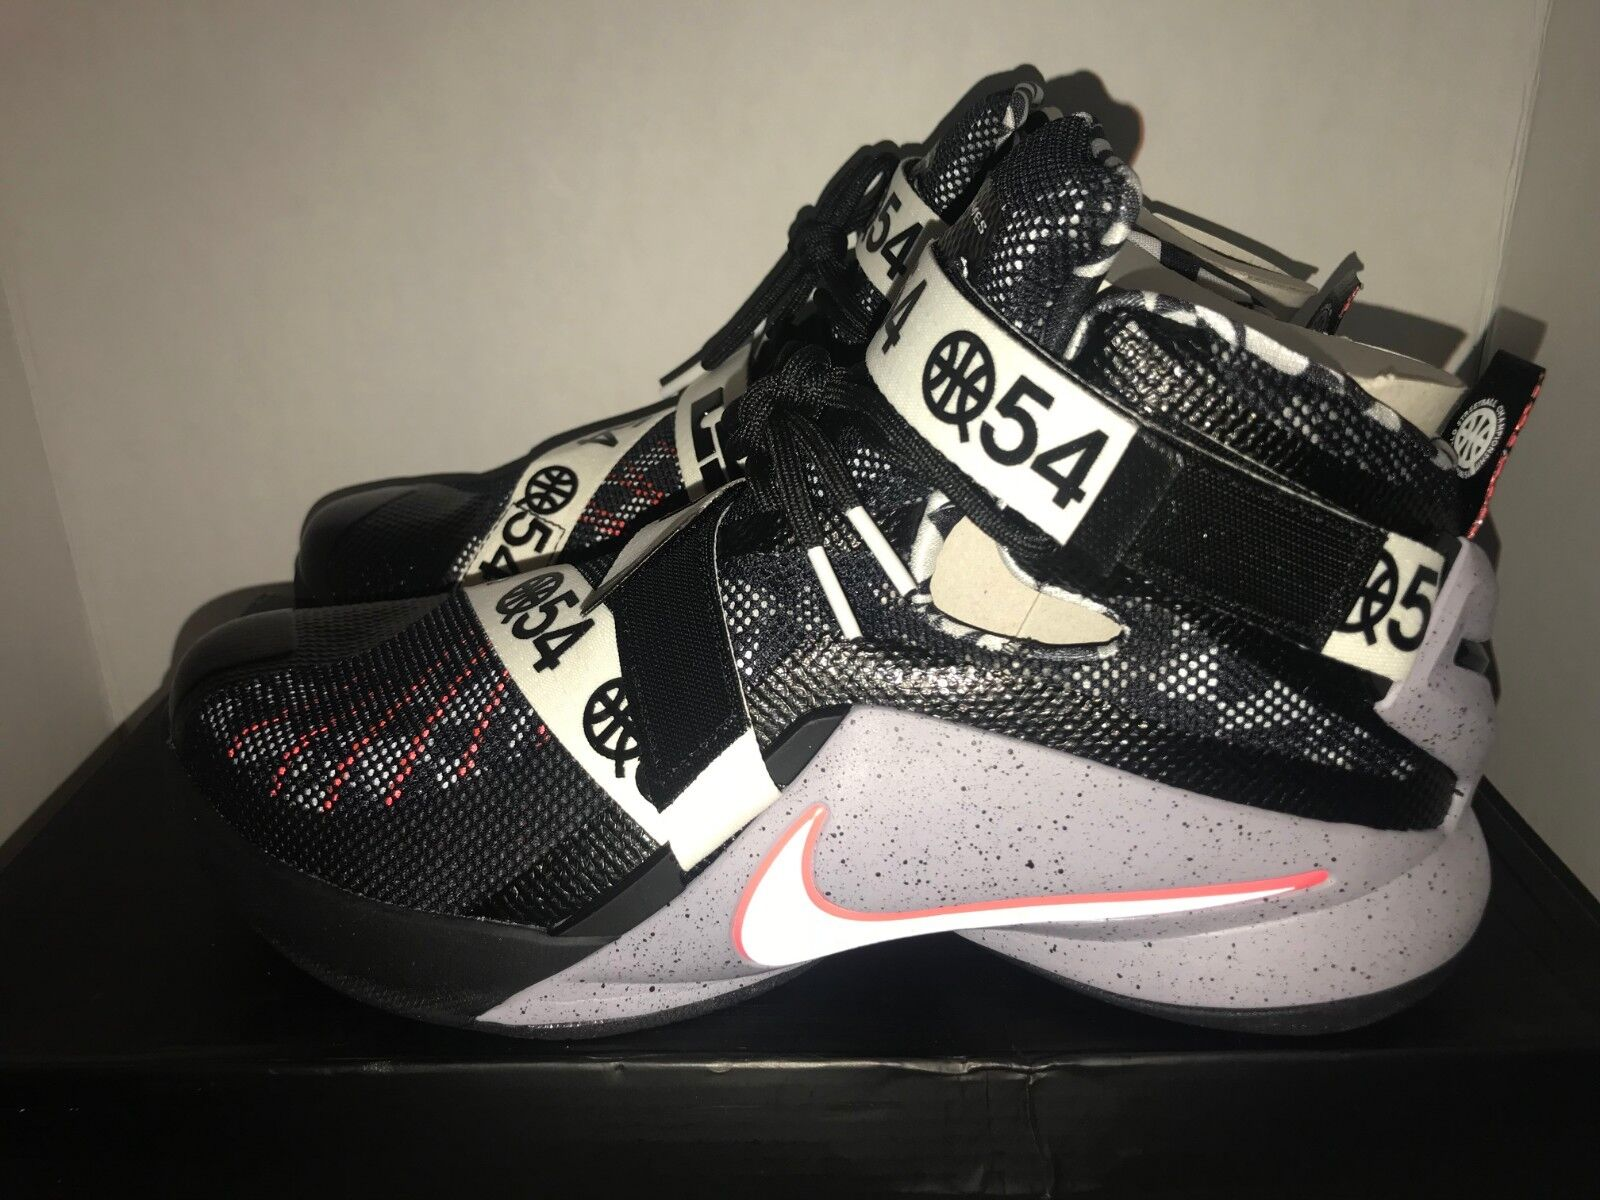 Nike LeBron Soldier 9 Lmtd QS